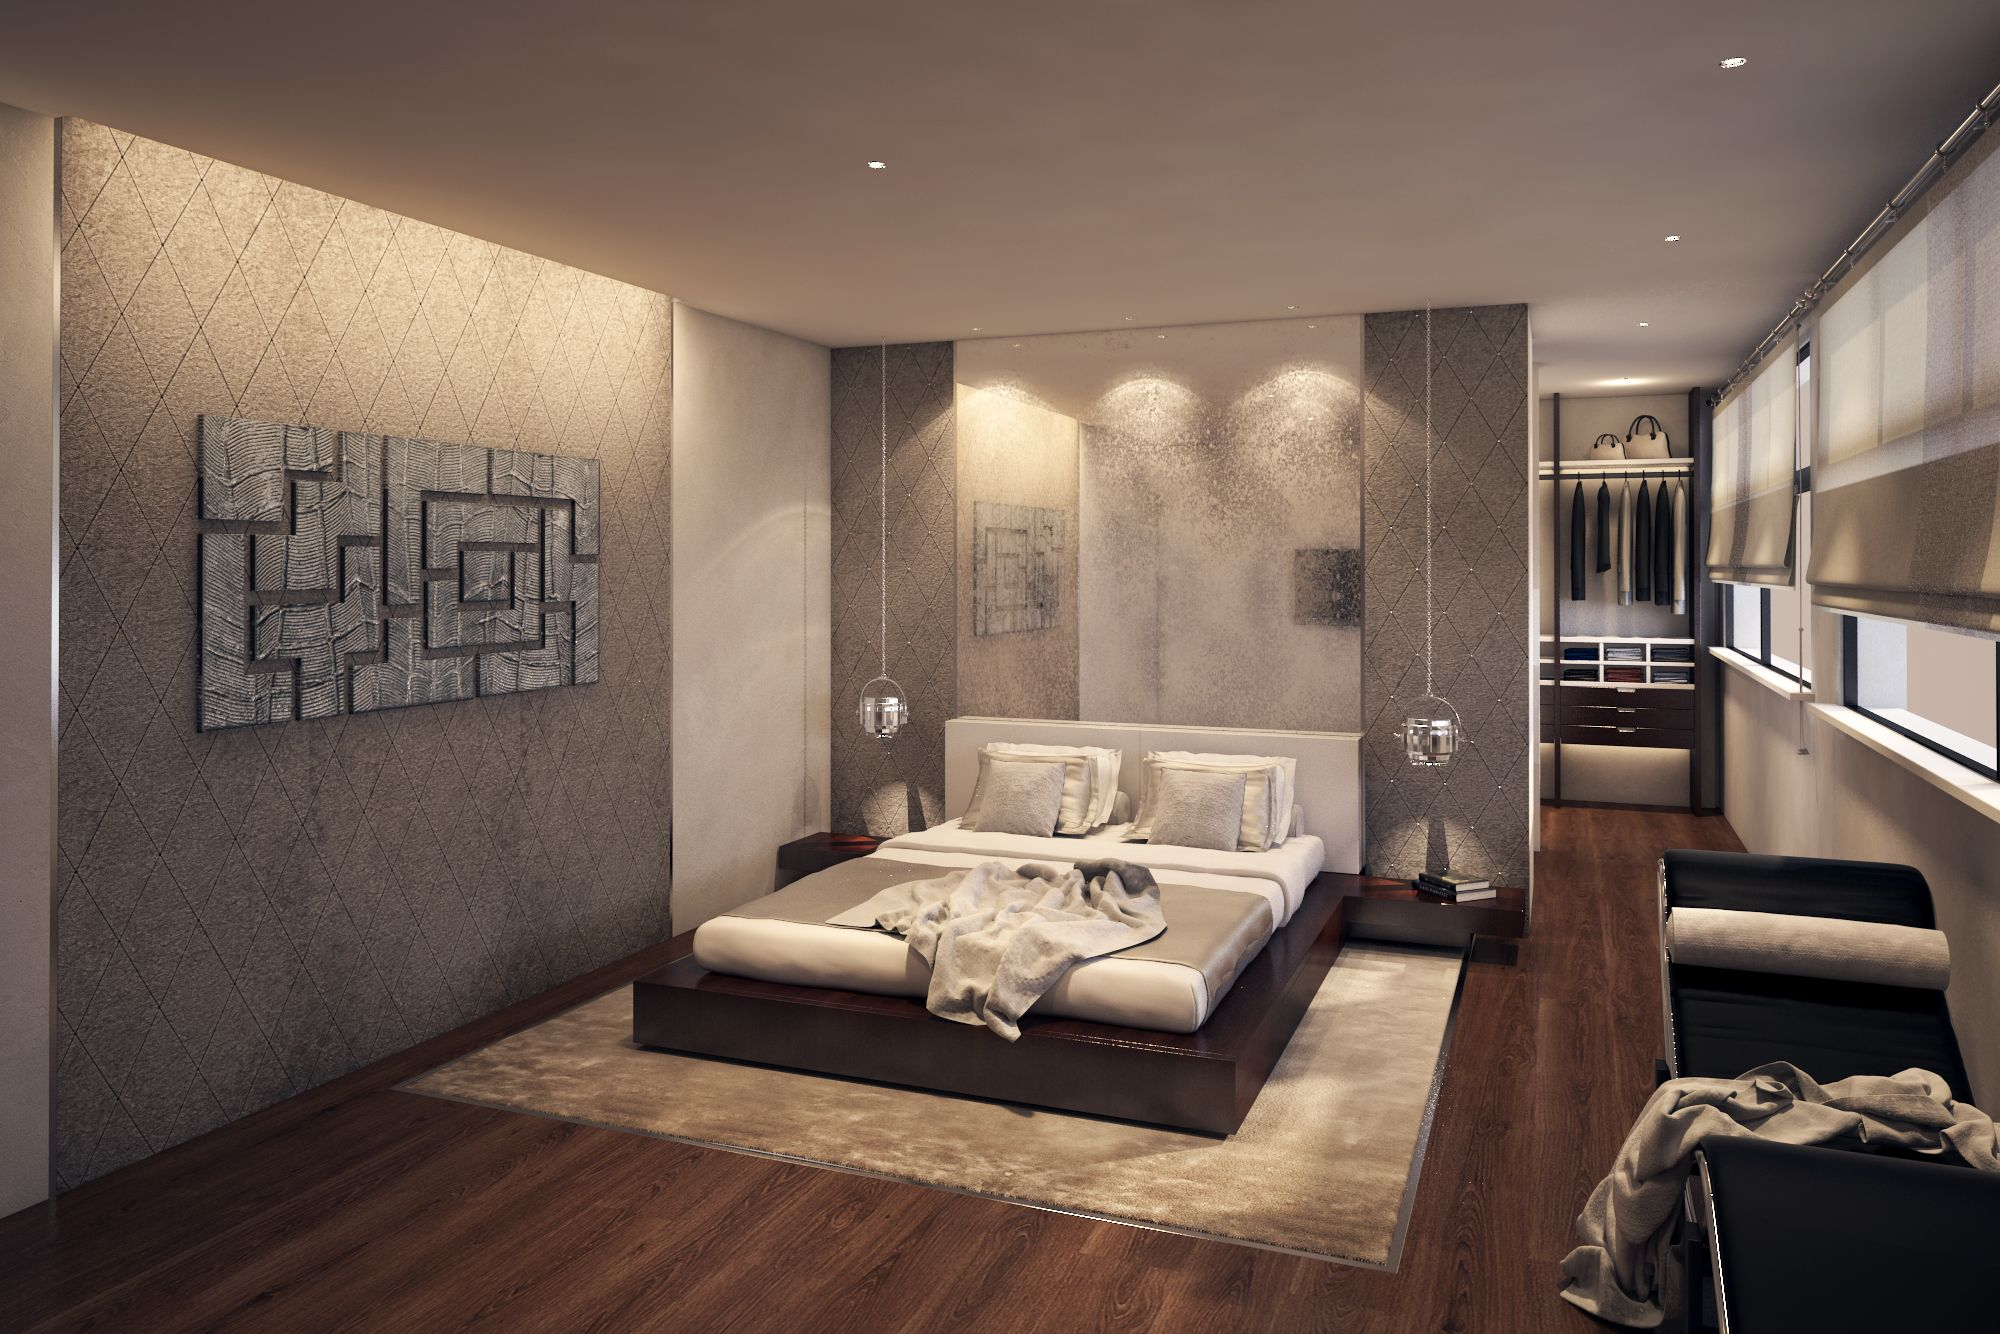 Bachelor Pad Interior Design 1 61 London Luxury Bachelor Bedroom Design With Walk In